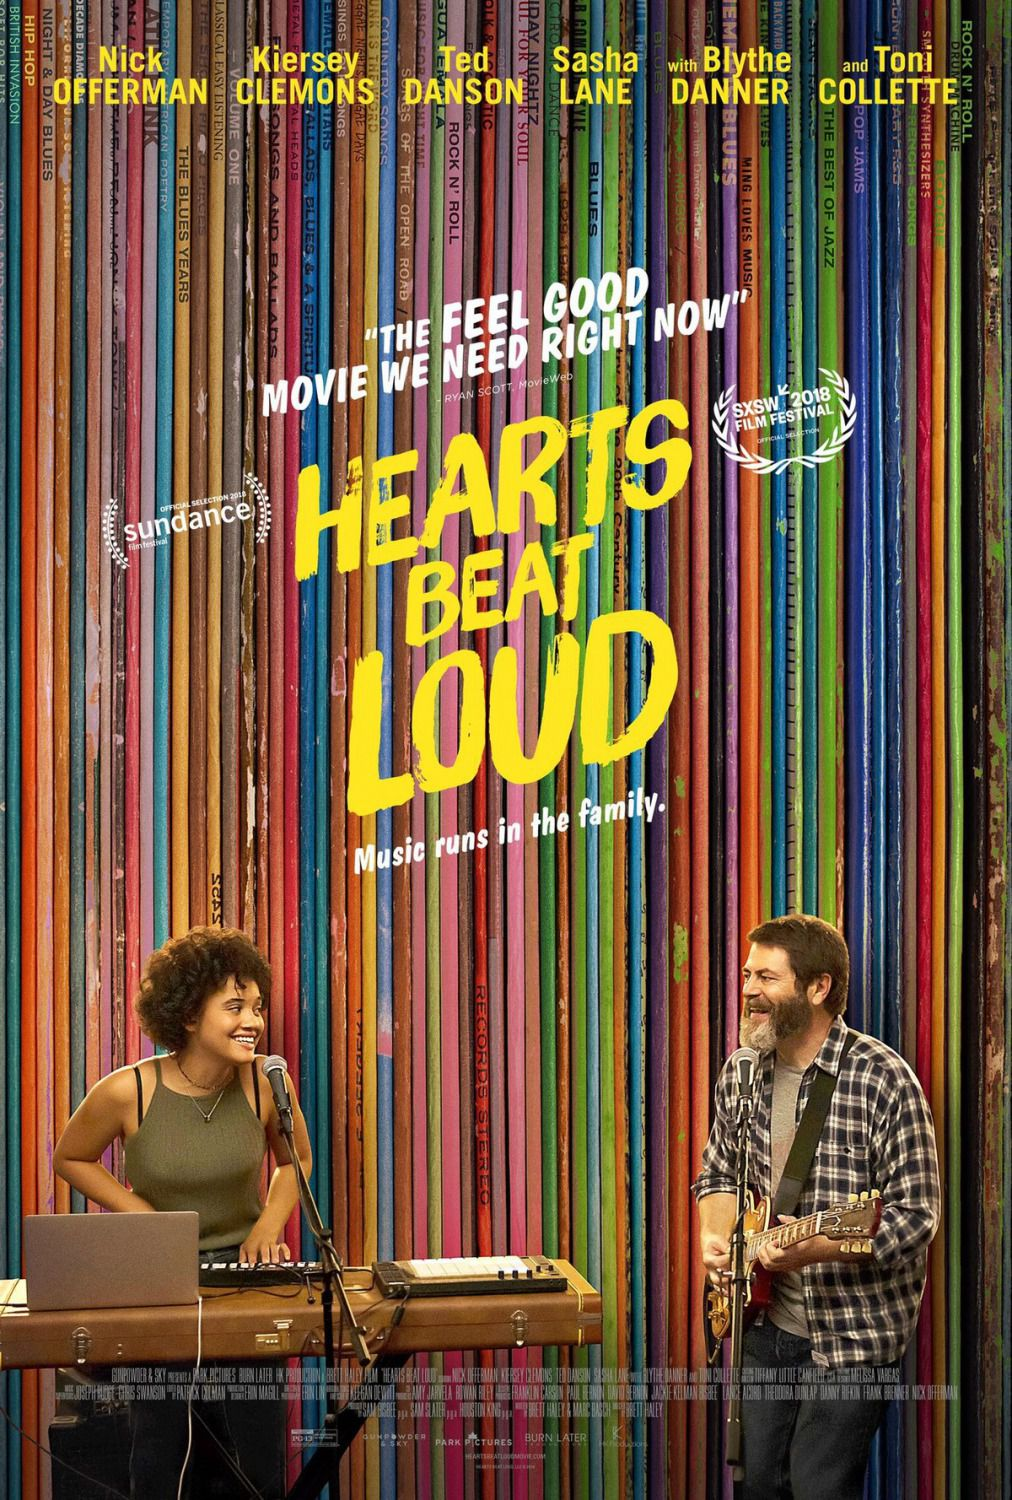 Hearts Beat Loud - Music runs in the Family - Cast: Kiersey Clemons, Nick Offerman, Ted Danson, Sasha Lane, Blythe Danner, Toni Collette 2018